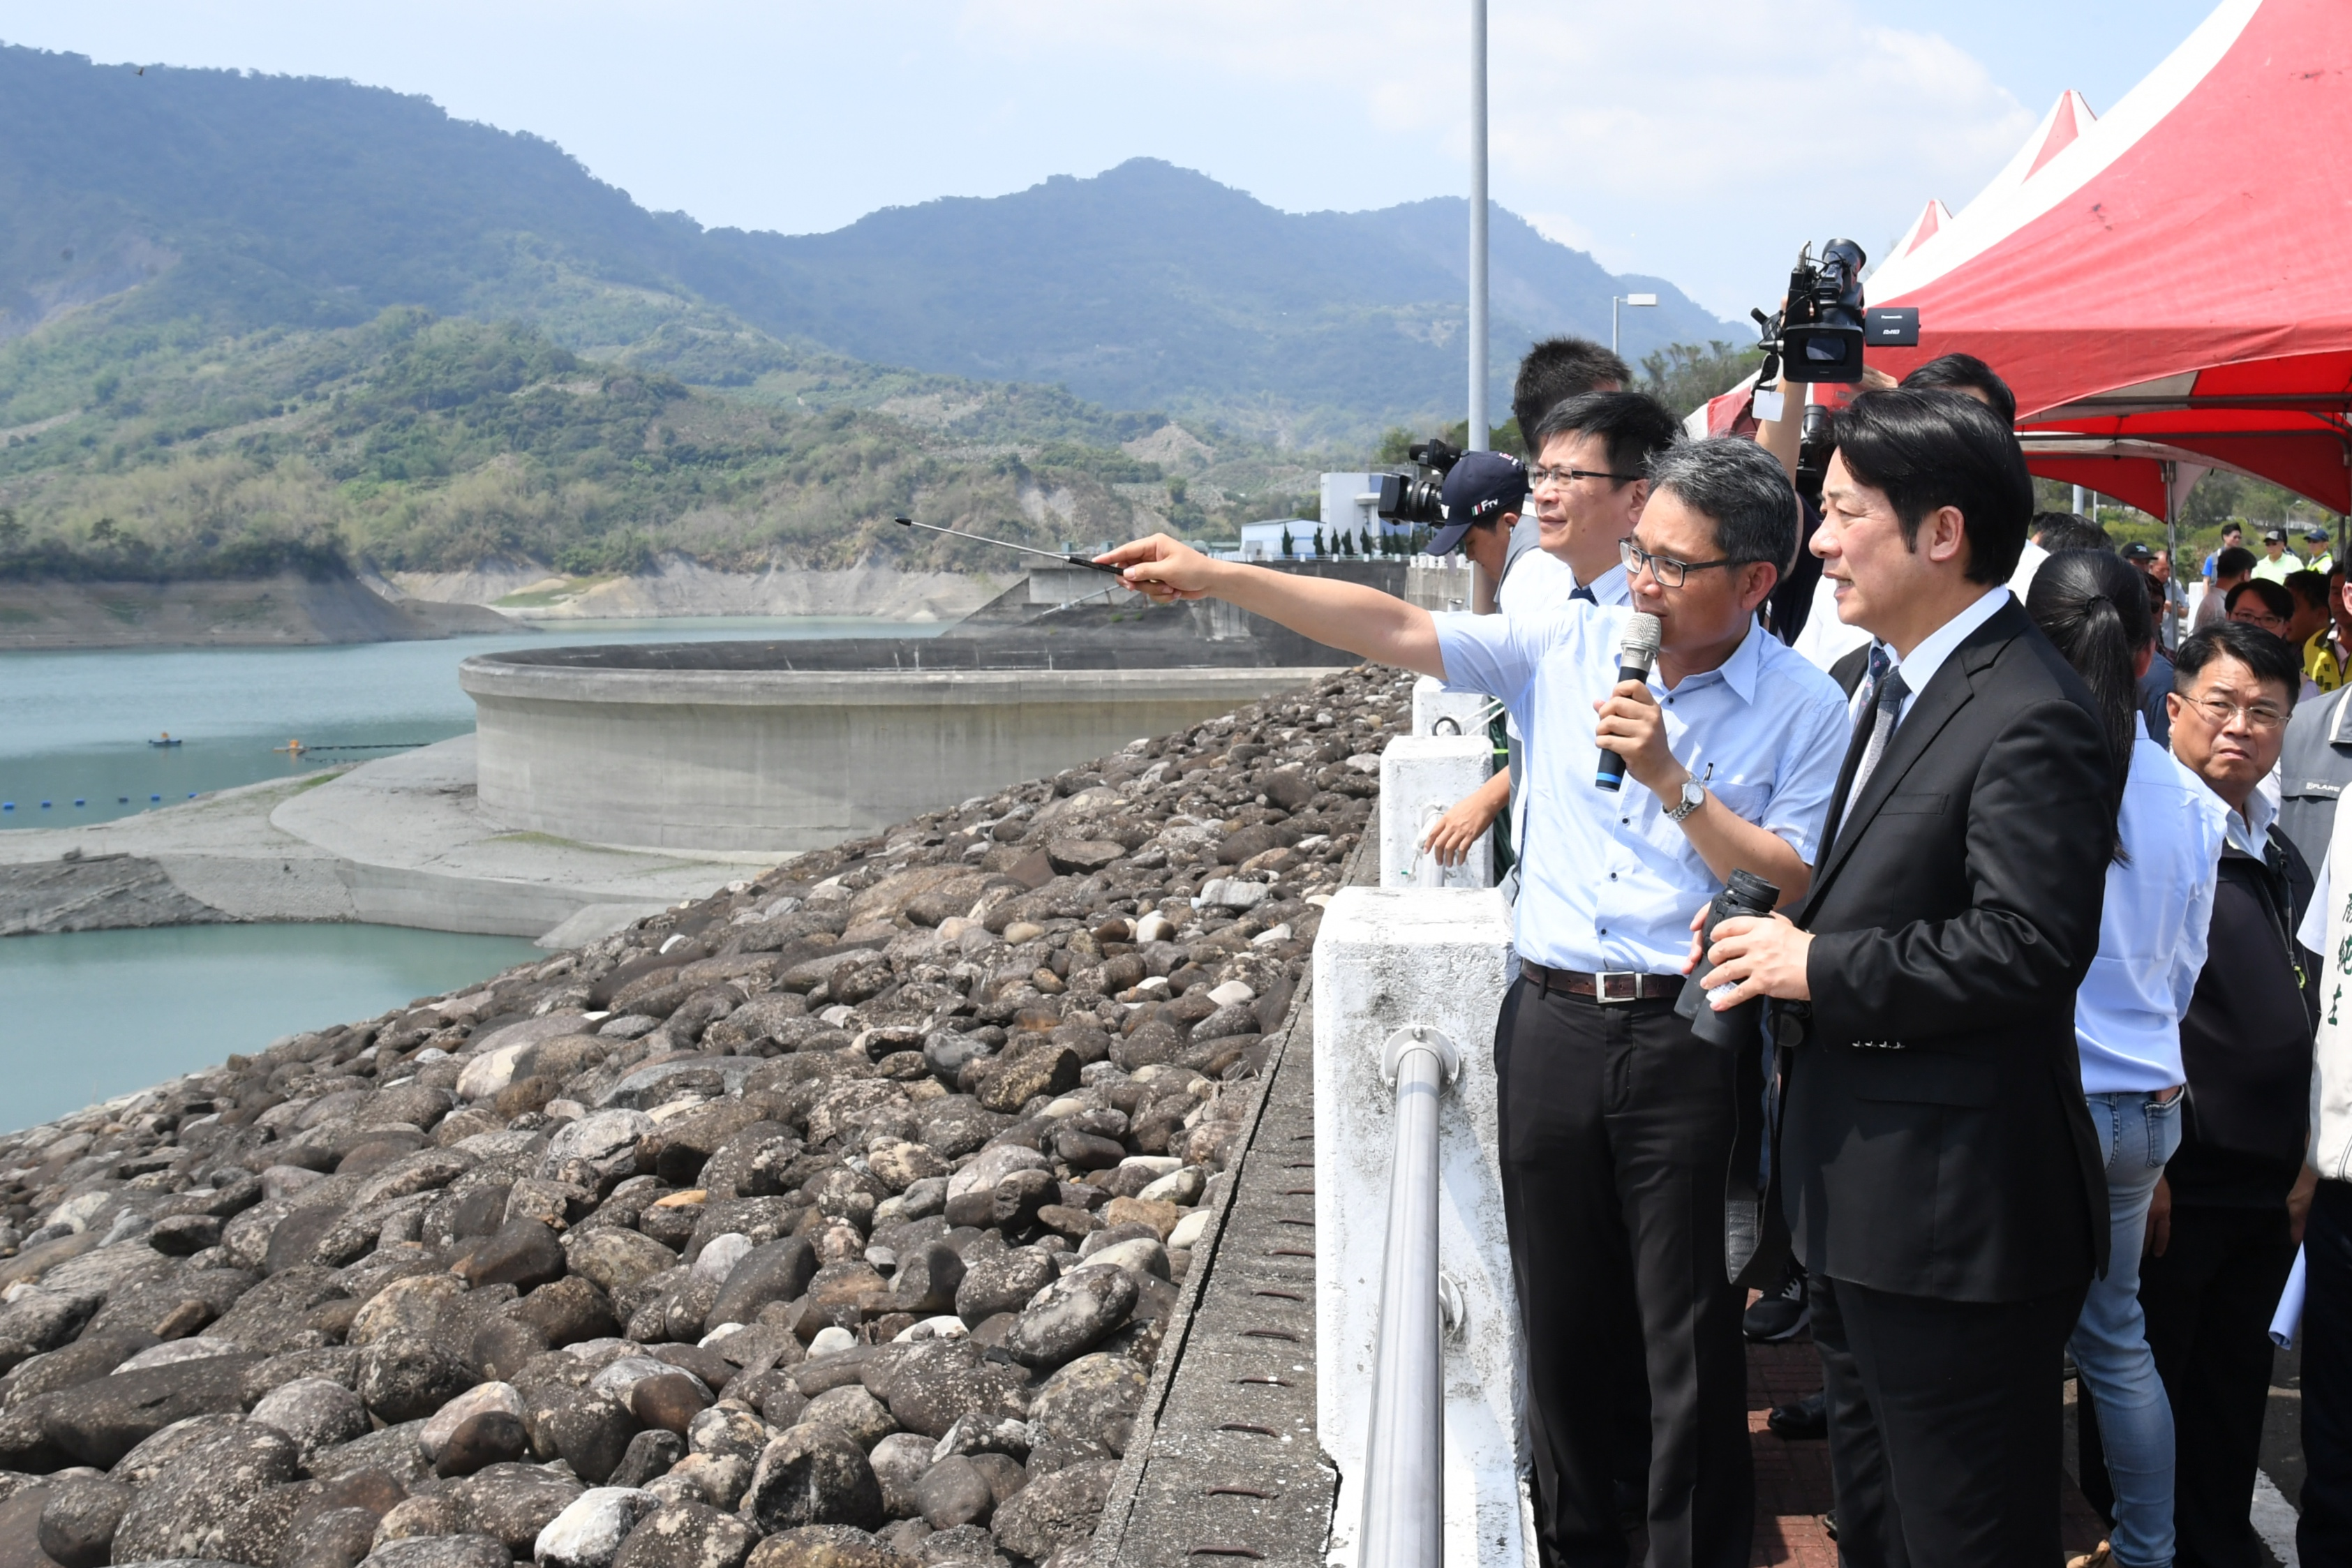 Premier Lai inspects Nanhua Reservoir dam amid water shortage